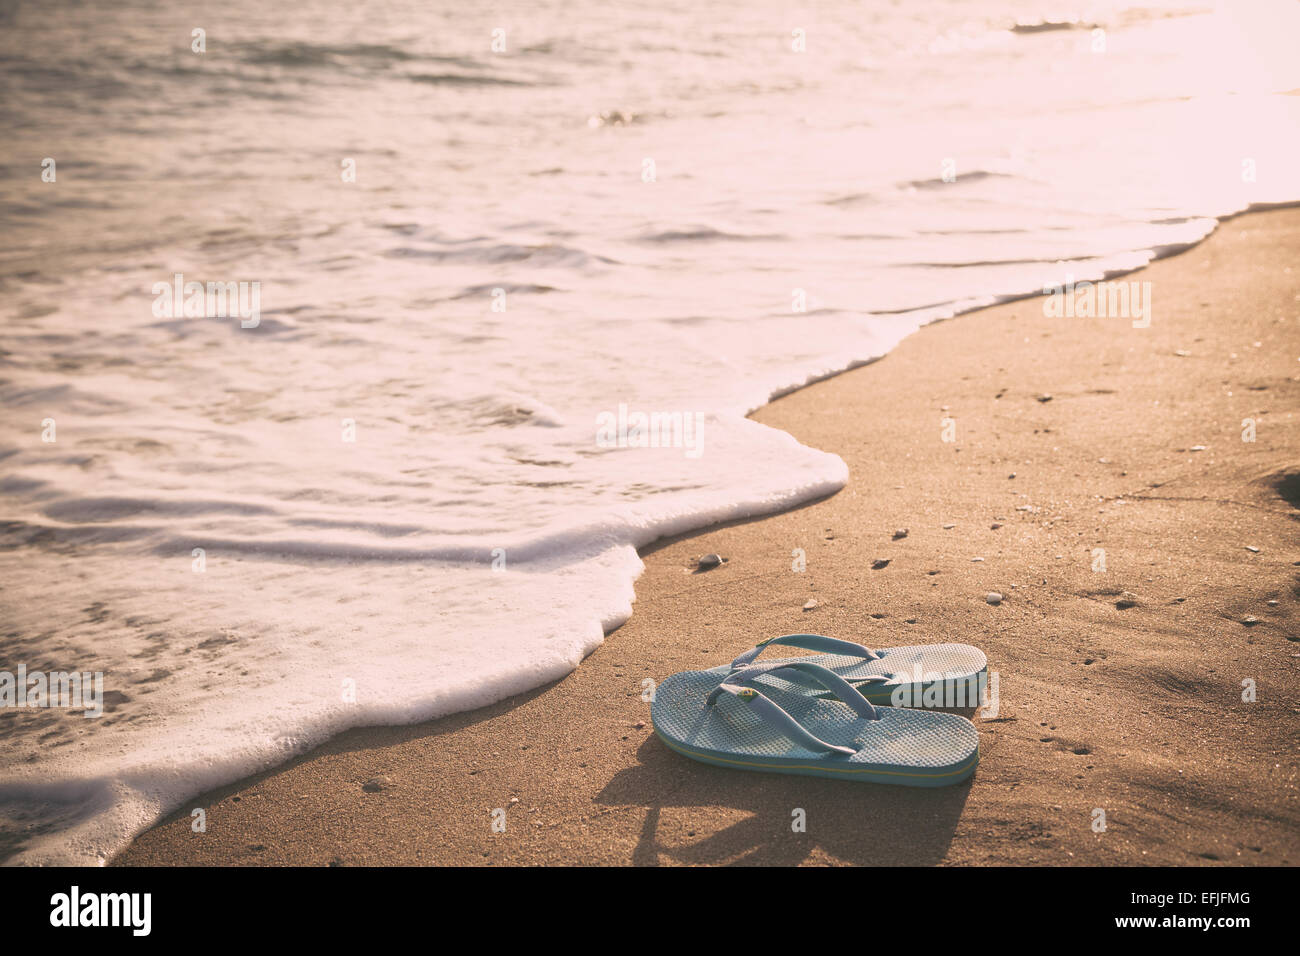 flip-flops, sandals sitting on the beach - Stock Image